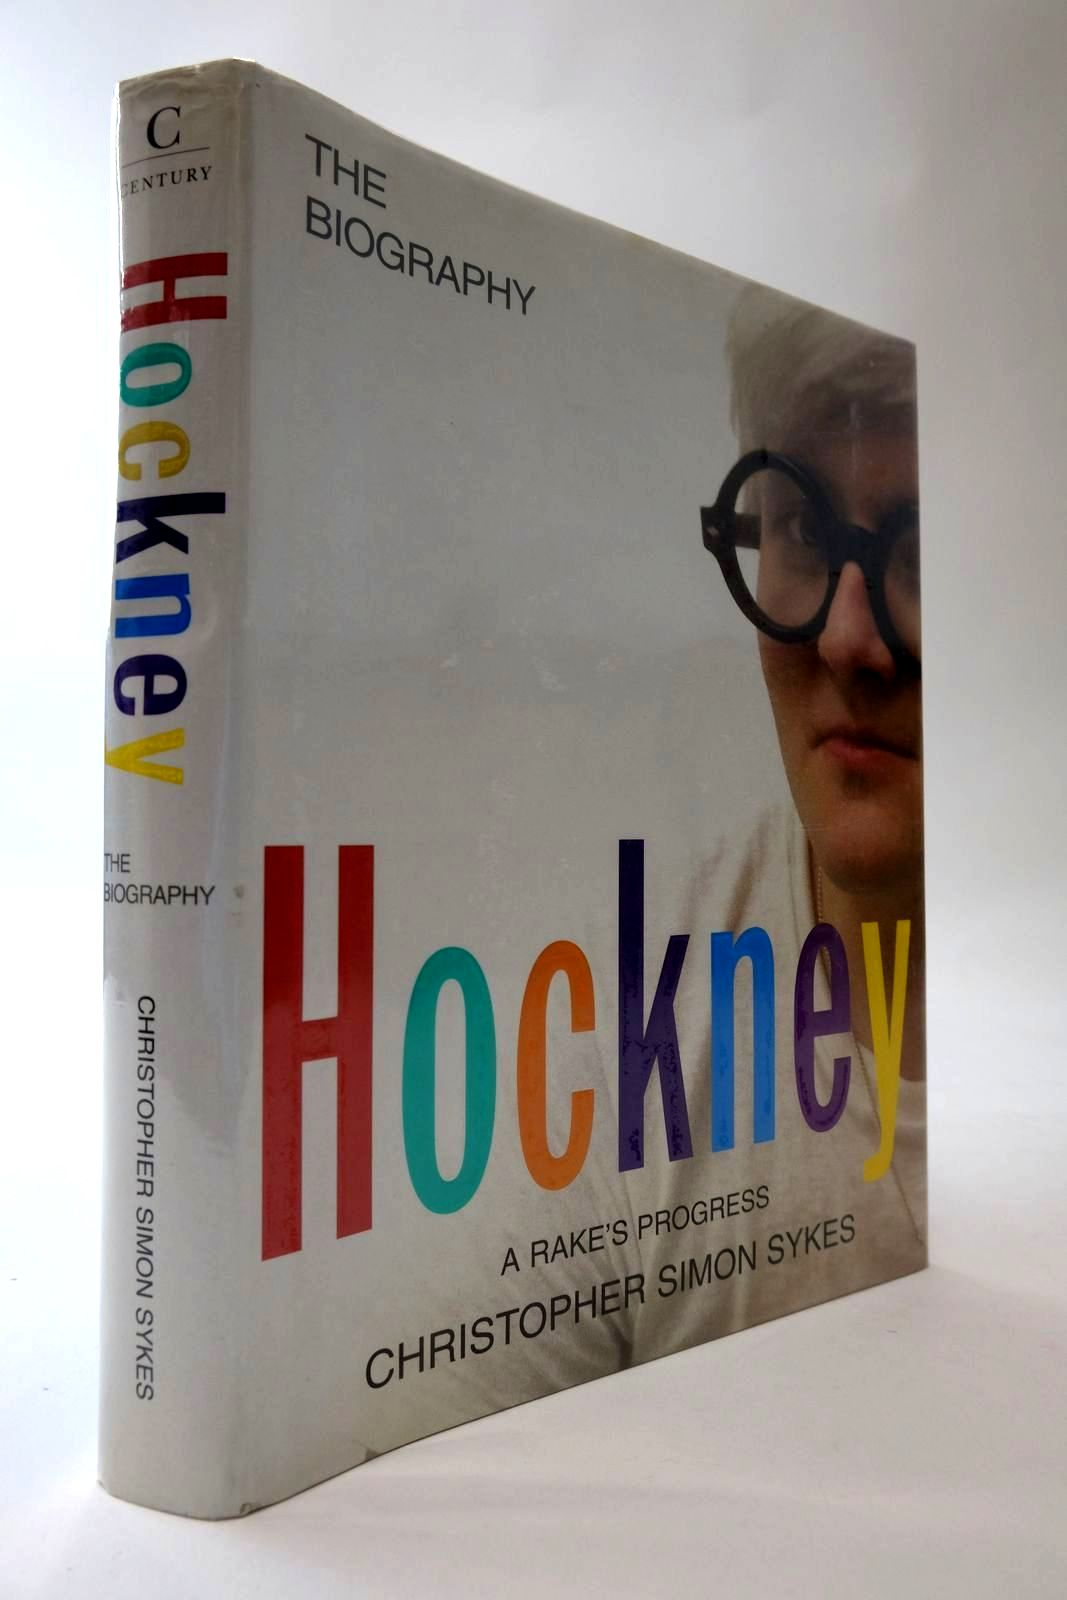 Photo of HOCKNEY: THE BIOGRAPHY VOLUME 1 1937-1975 written by Sykes, Christopher Simon illustrated by Hockney, David published by Century (STOCK CODE: 2134000)  for sale by Stella & Rose's Books